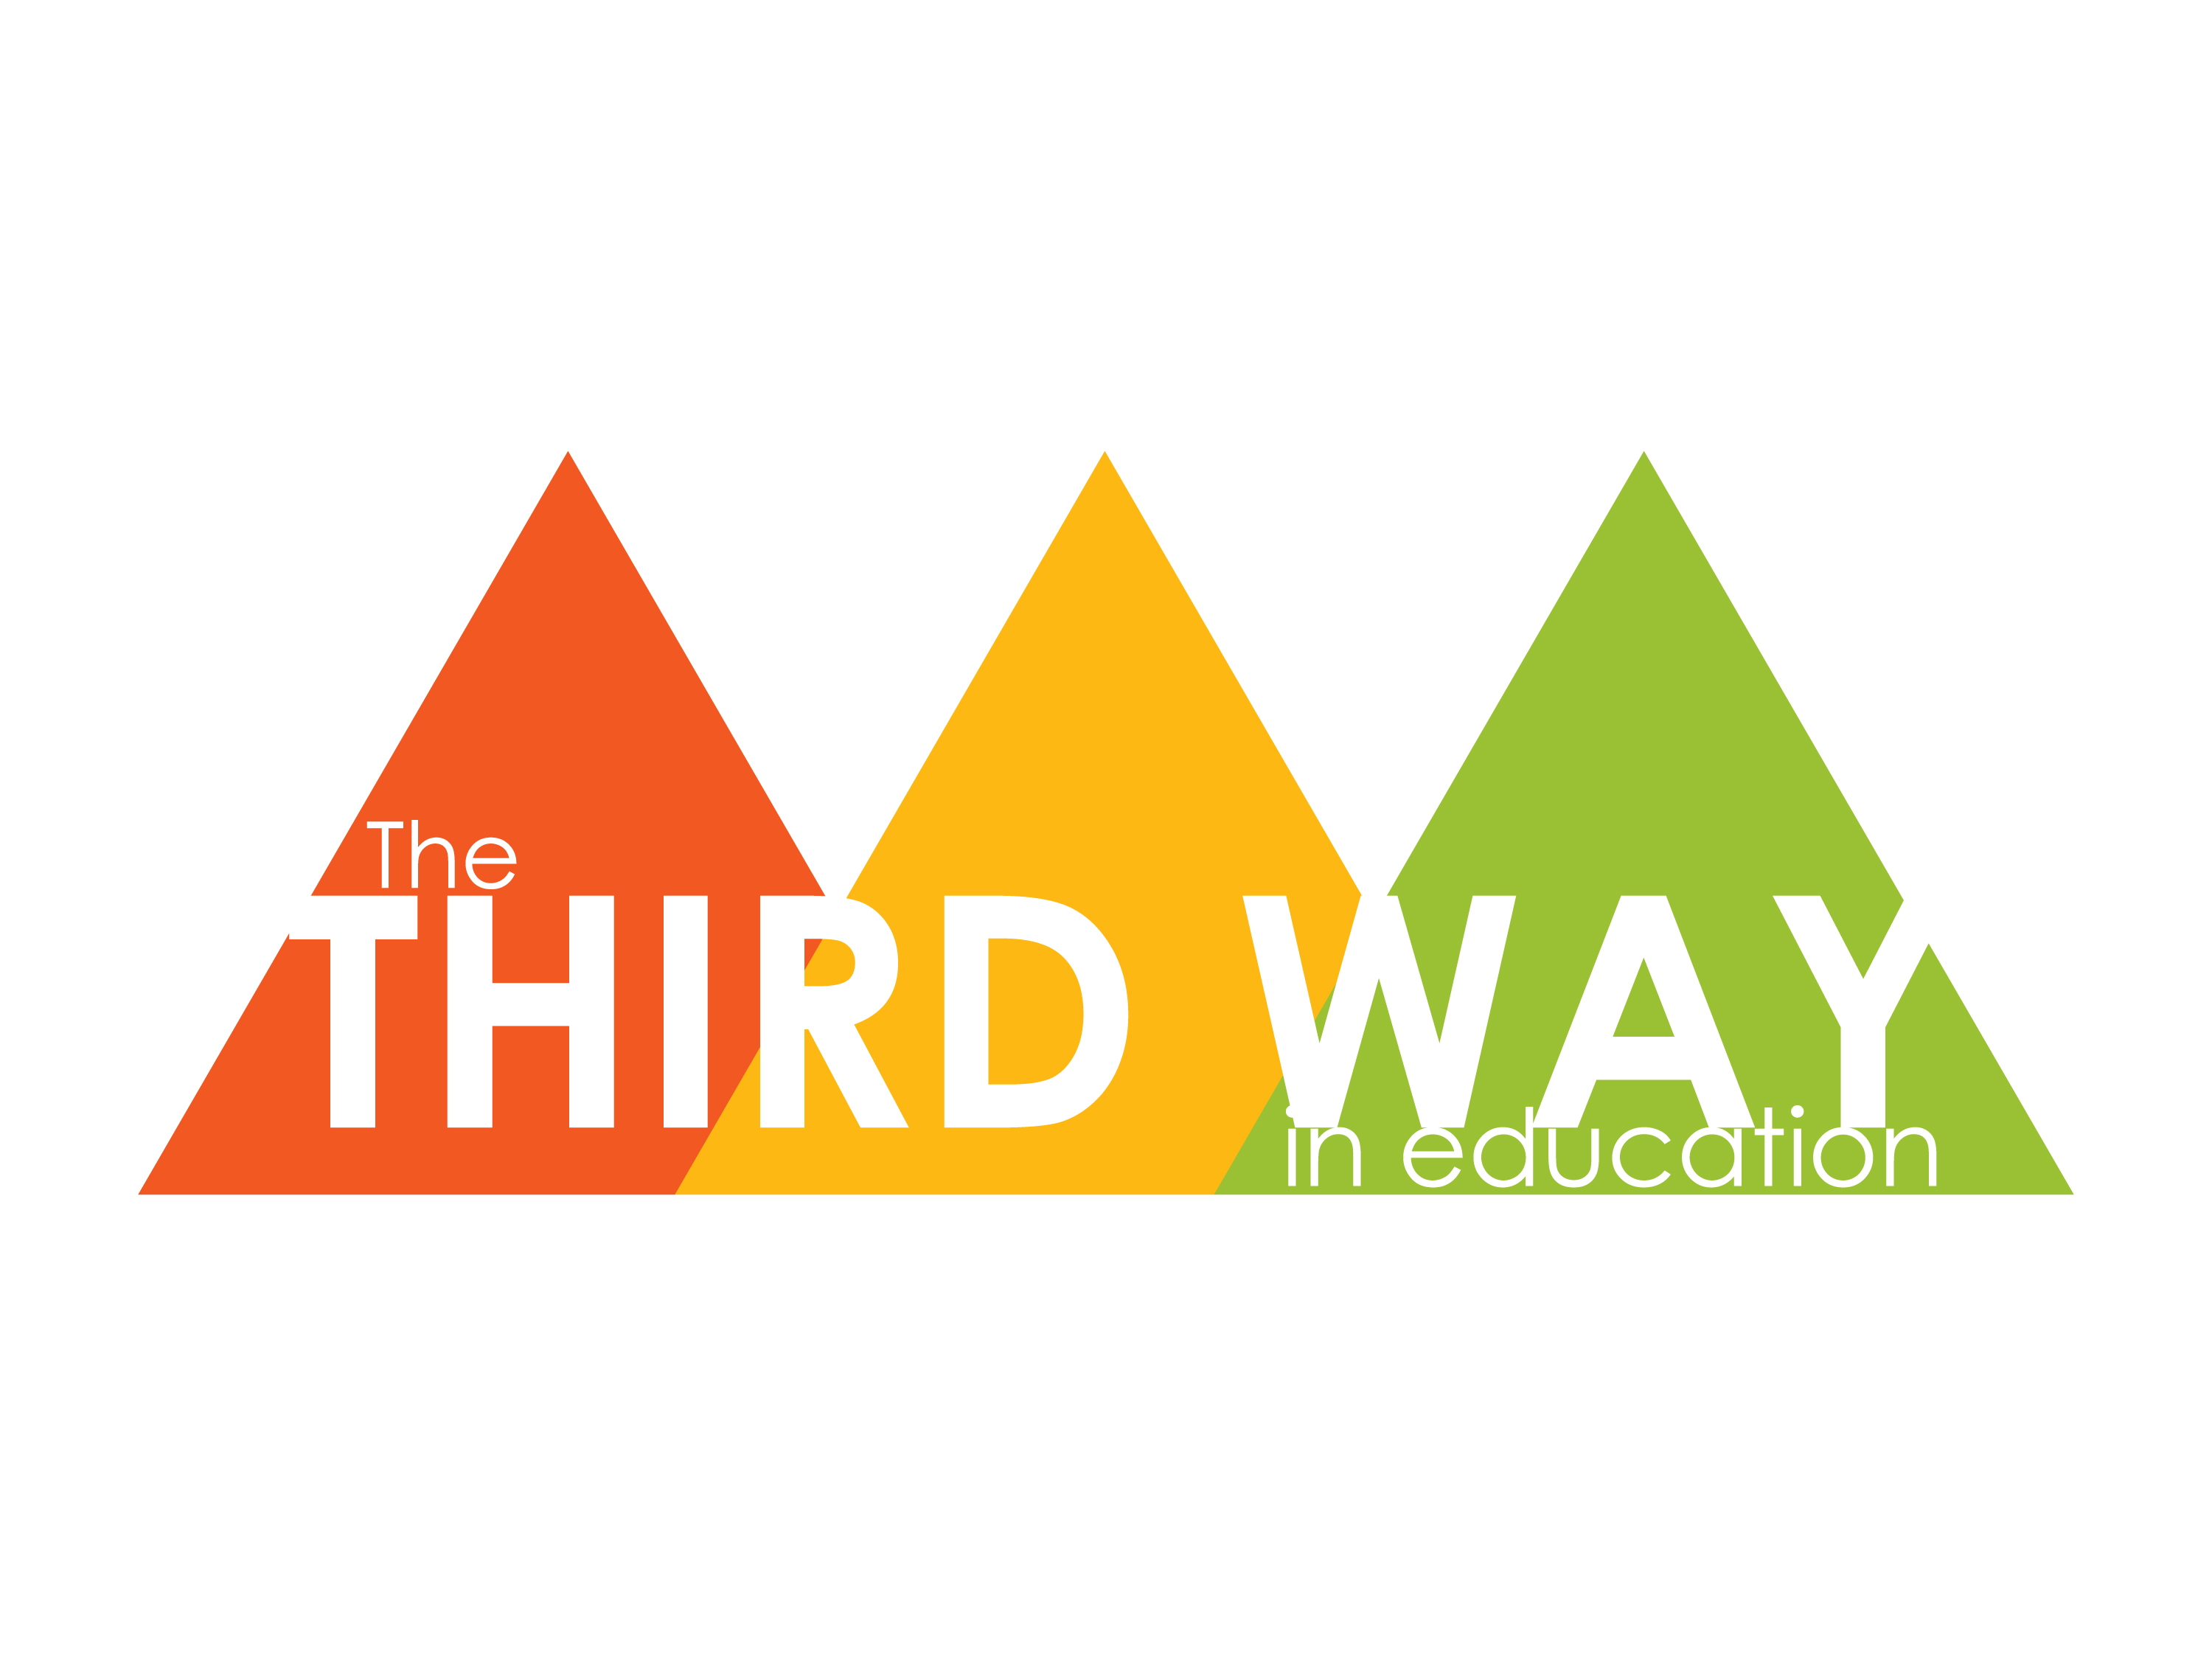 The Emerging Third Way: Blazing an Optimistic Path Ahead in K-12 Education